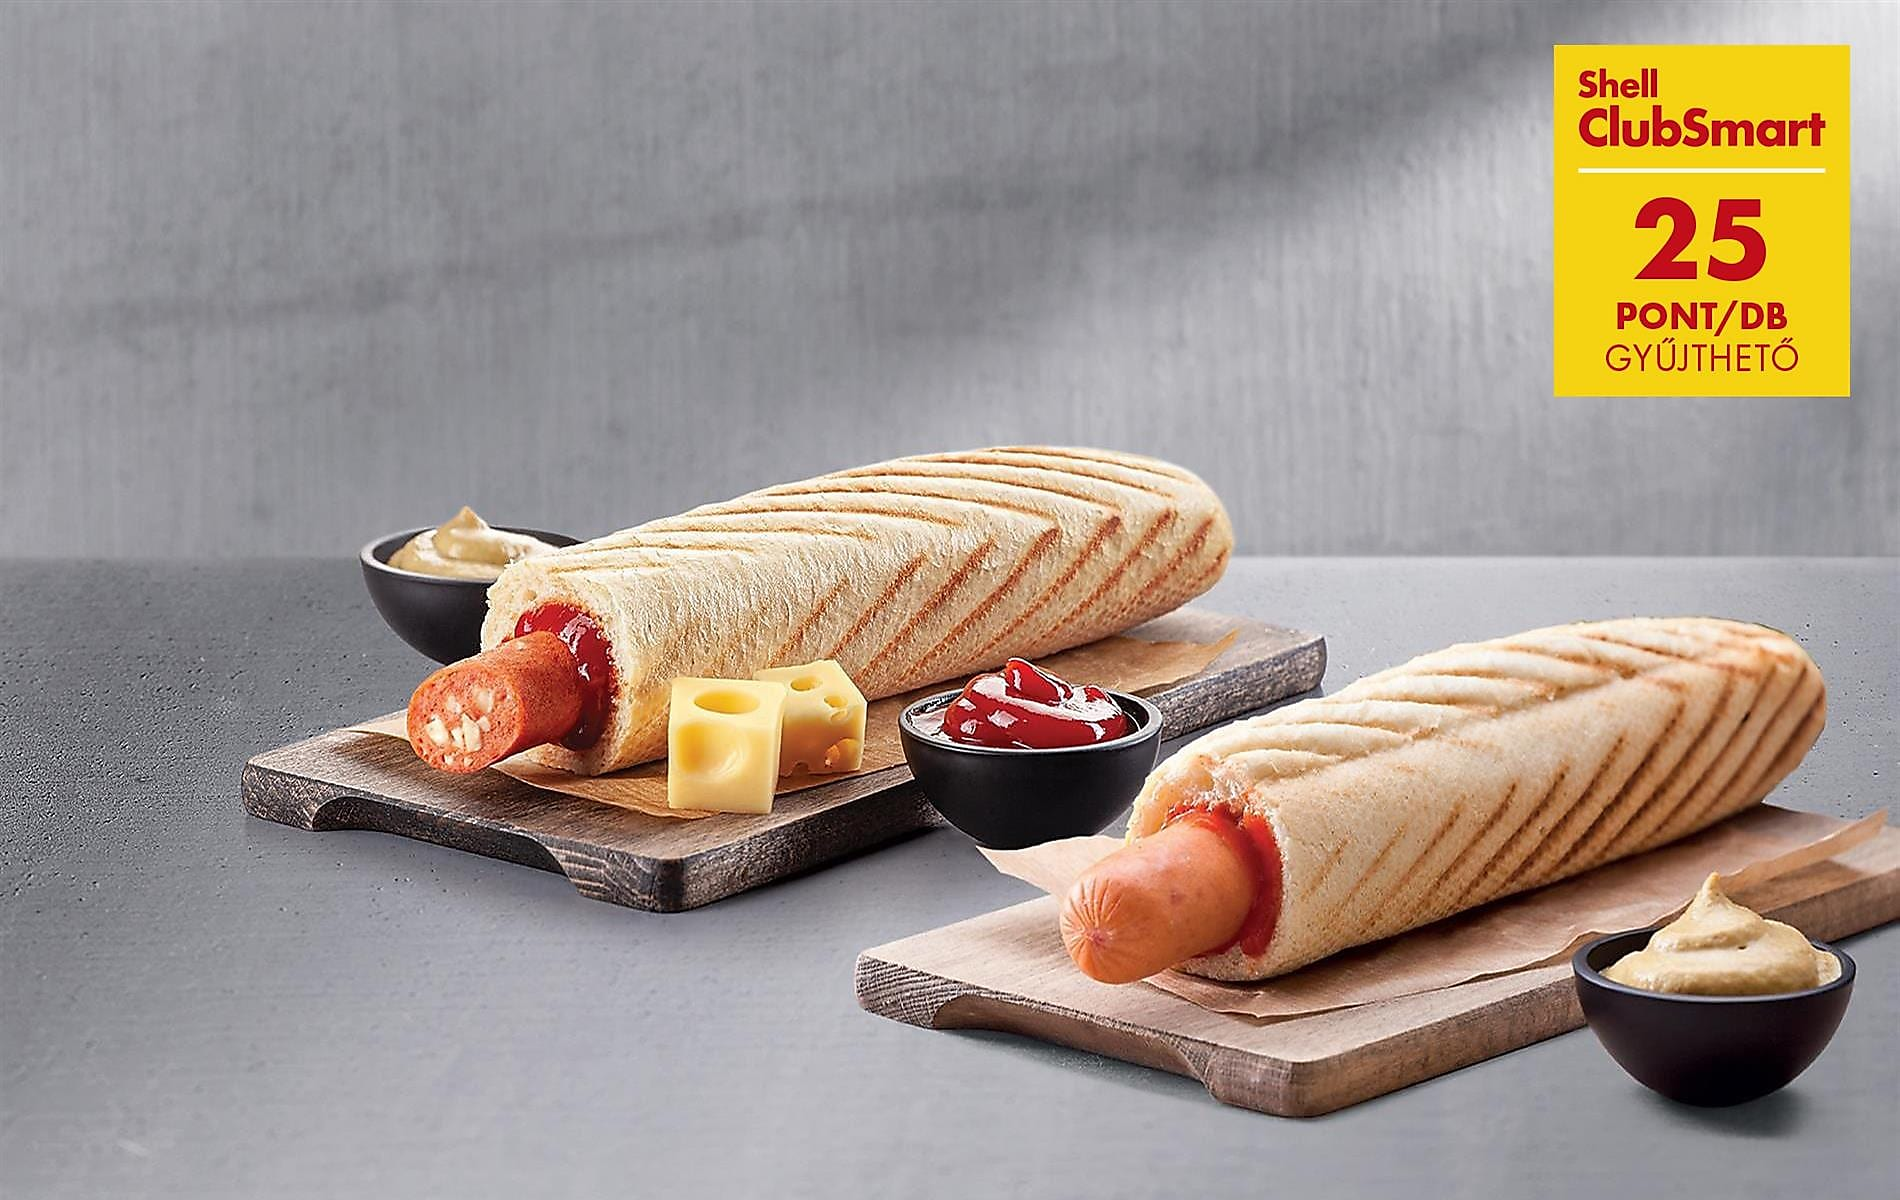 25 pont deli by Shell hot doggal